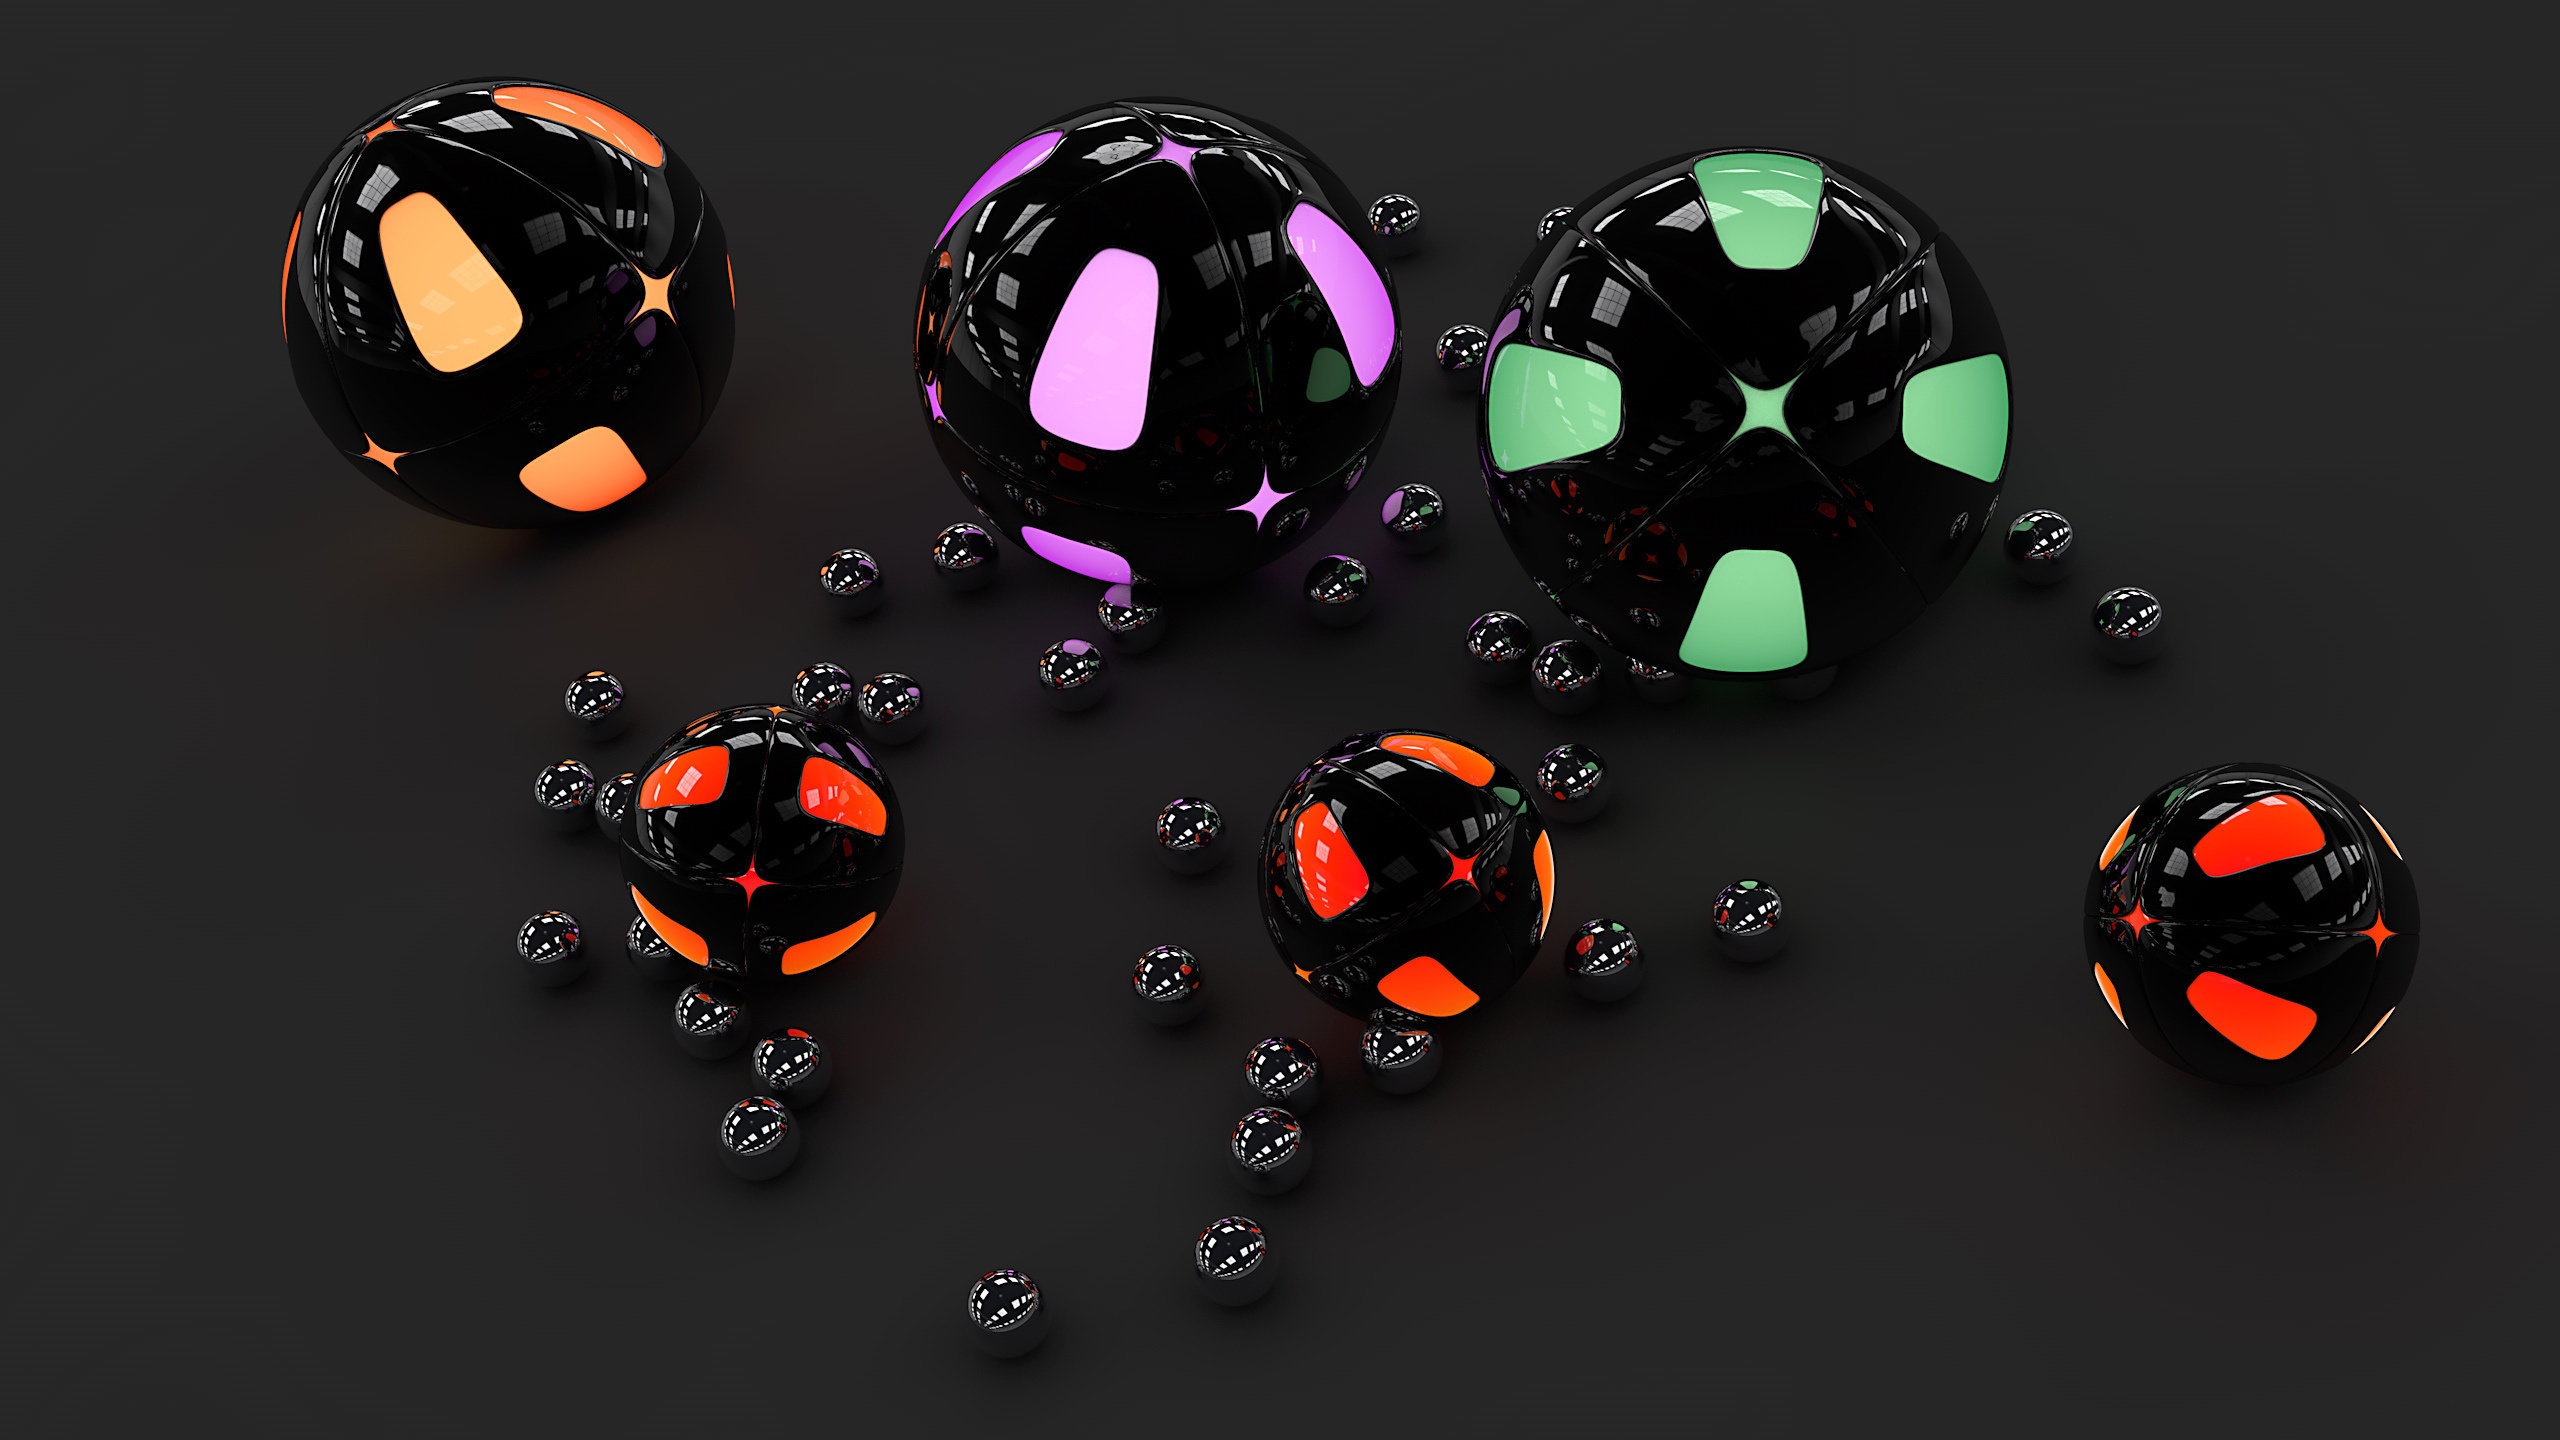 High resolution Ball hd 2560x1440 background ID:27045 for desktop